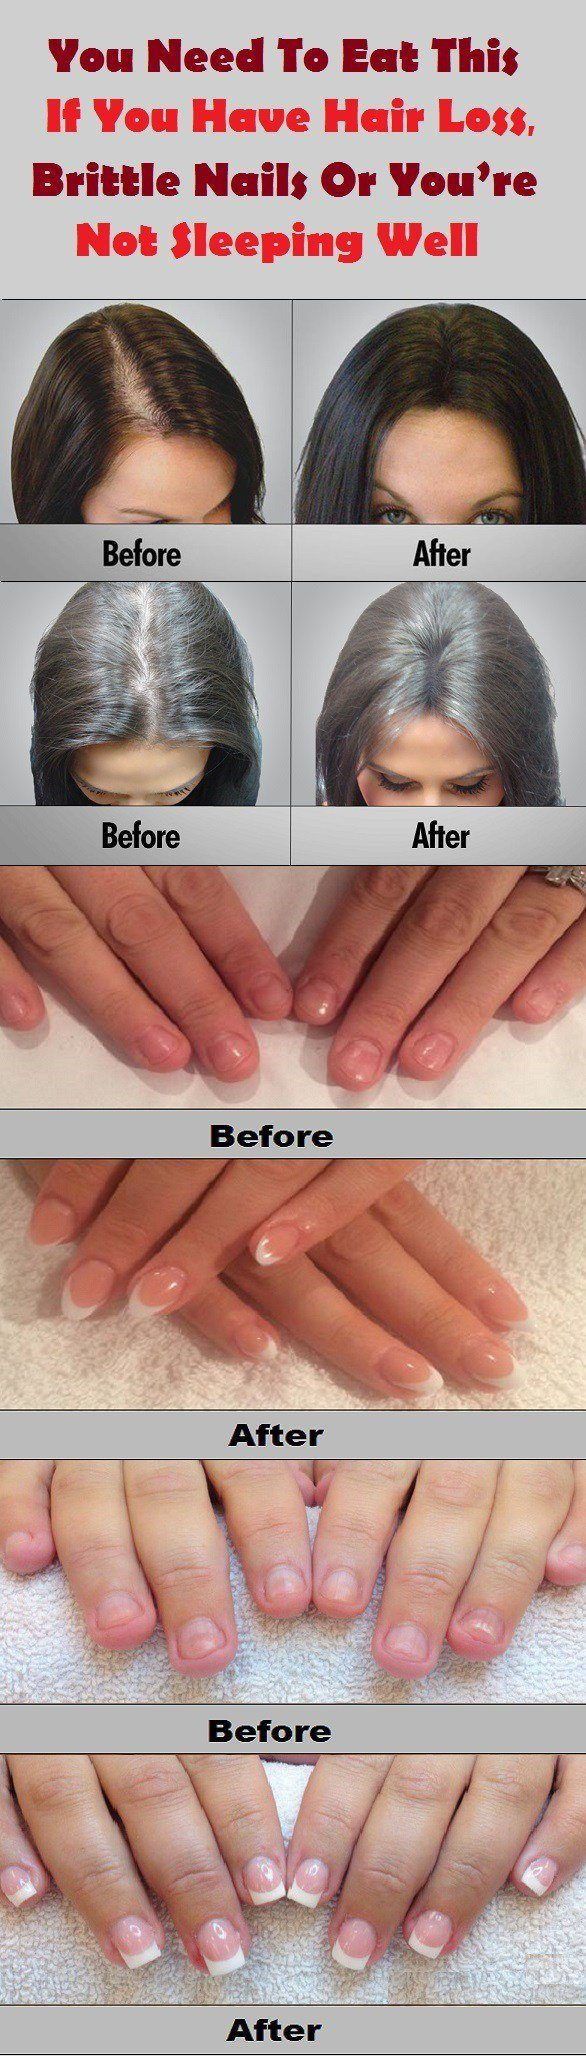 If You Have Hair Loss, Brittle Nails or You're Not Sleeping Well, Checkout This Natural Recipe